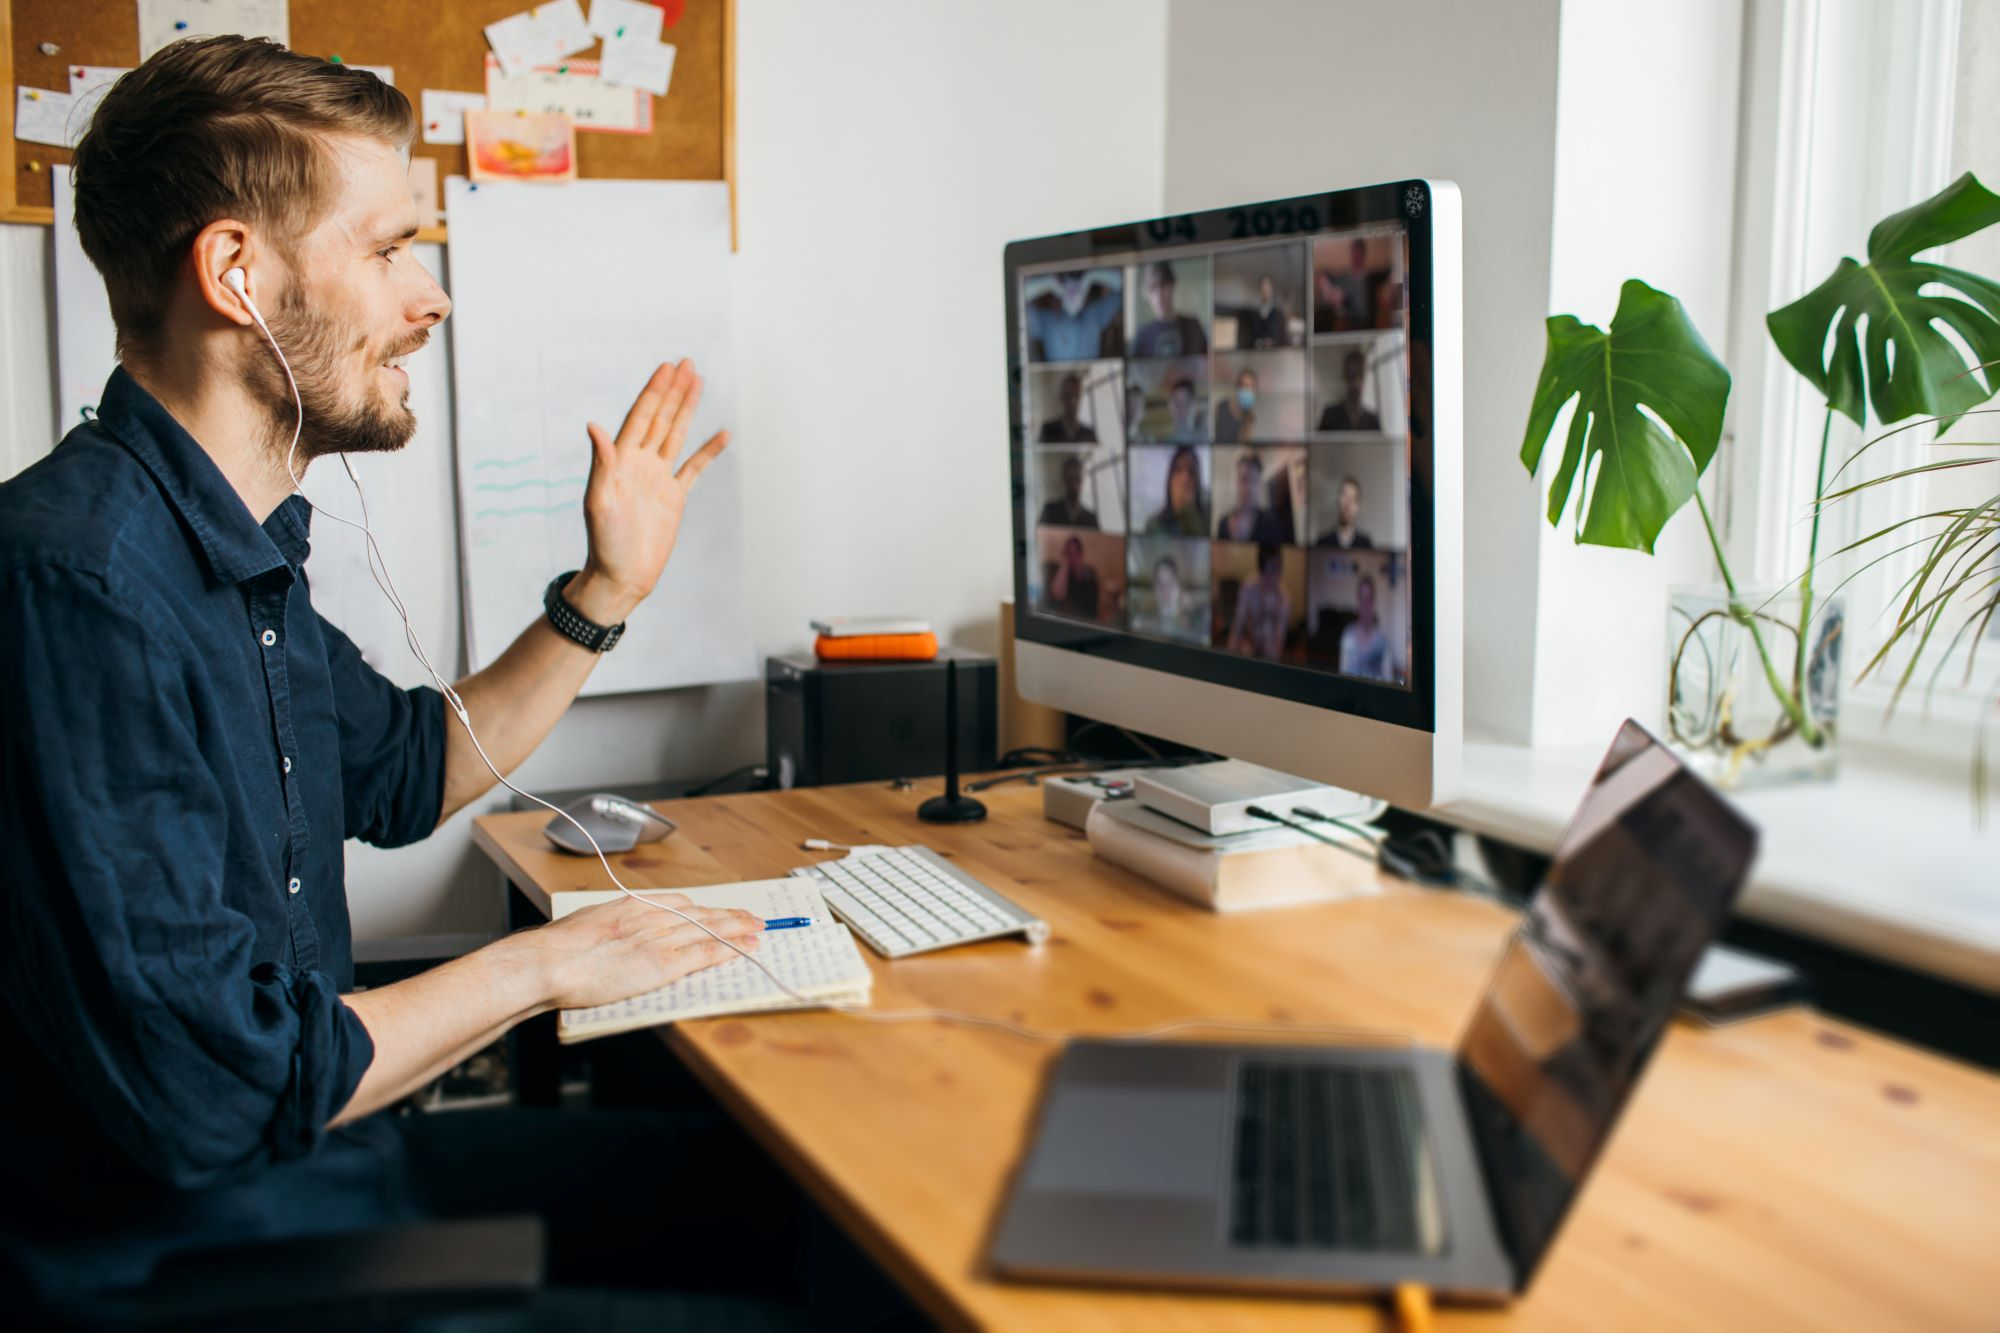 man waves at screen during online meeting